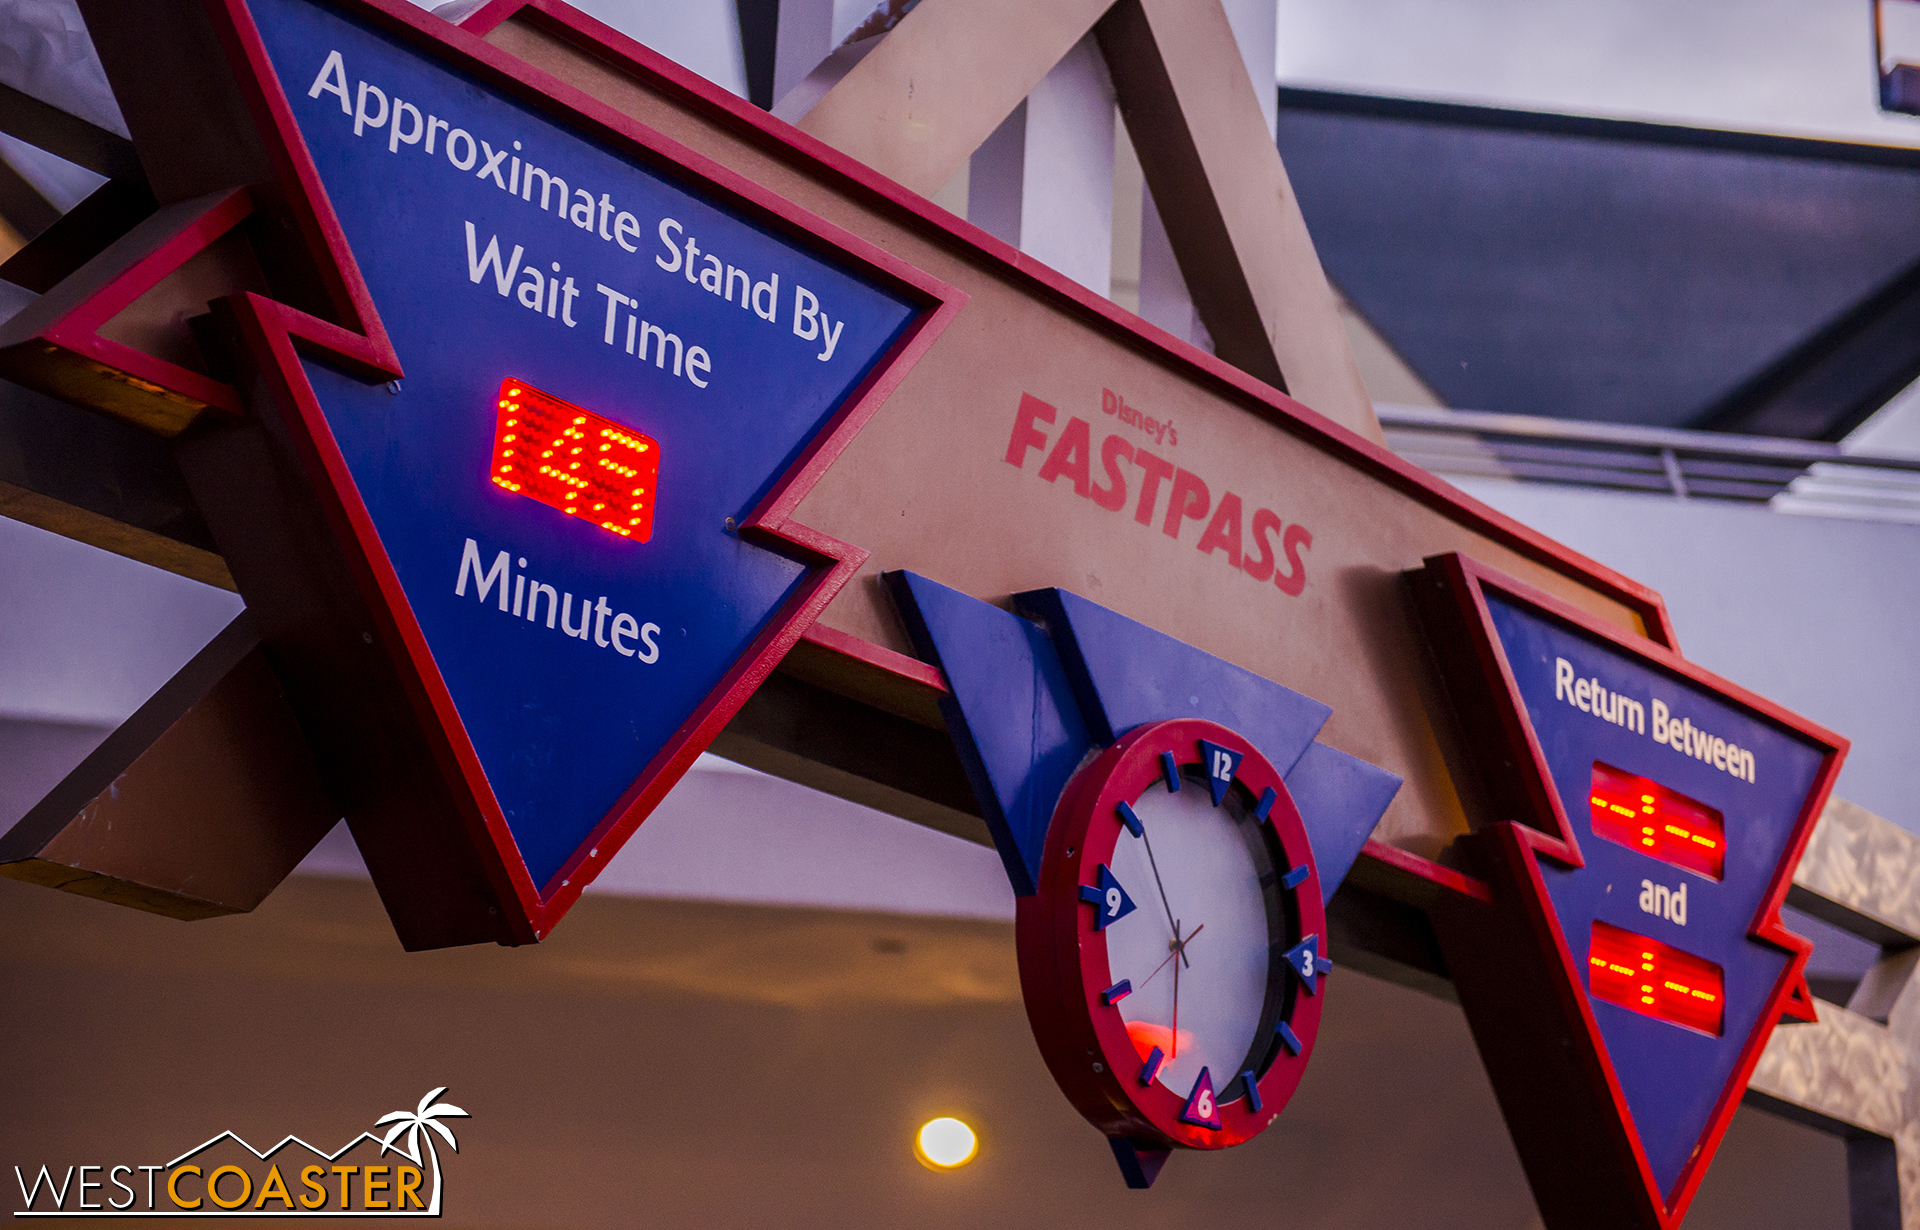 Disneyland starts getting Tokyo-level wait times. Nearly two and a half hours for Hyperspace Mountain?? No thanks. And wait times were near an hour for numerous other rides yesterday too.